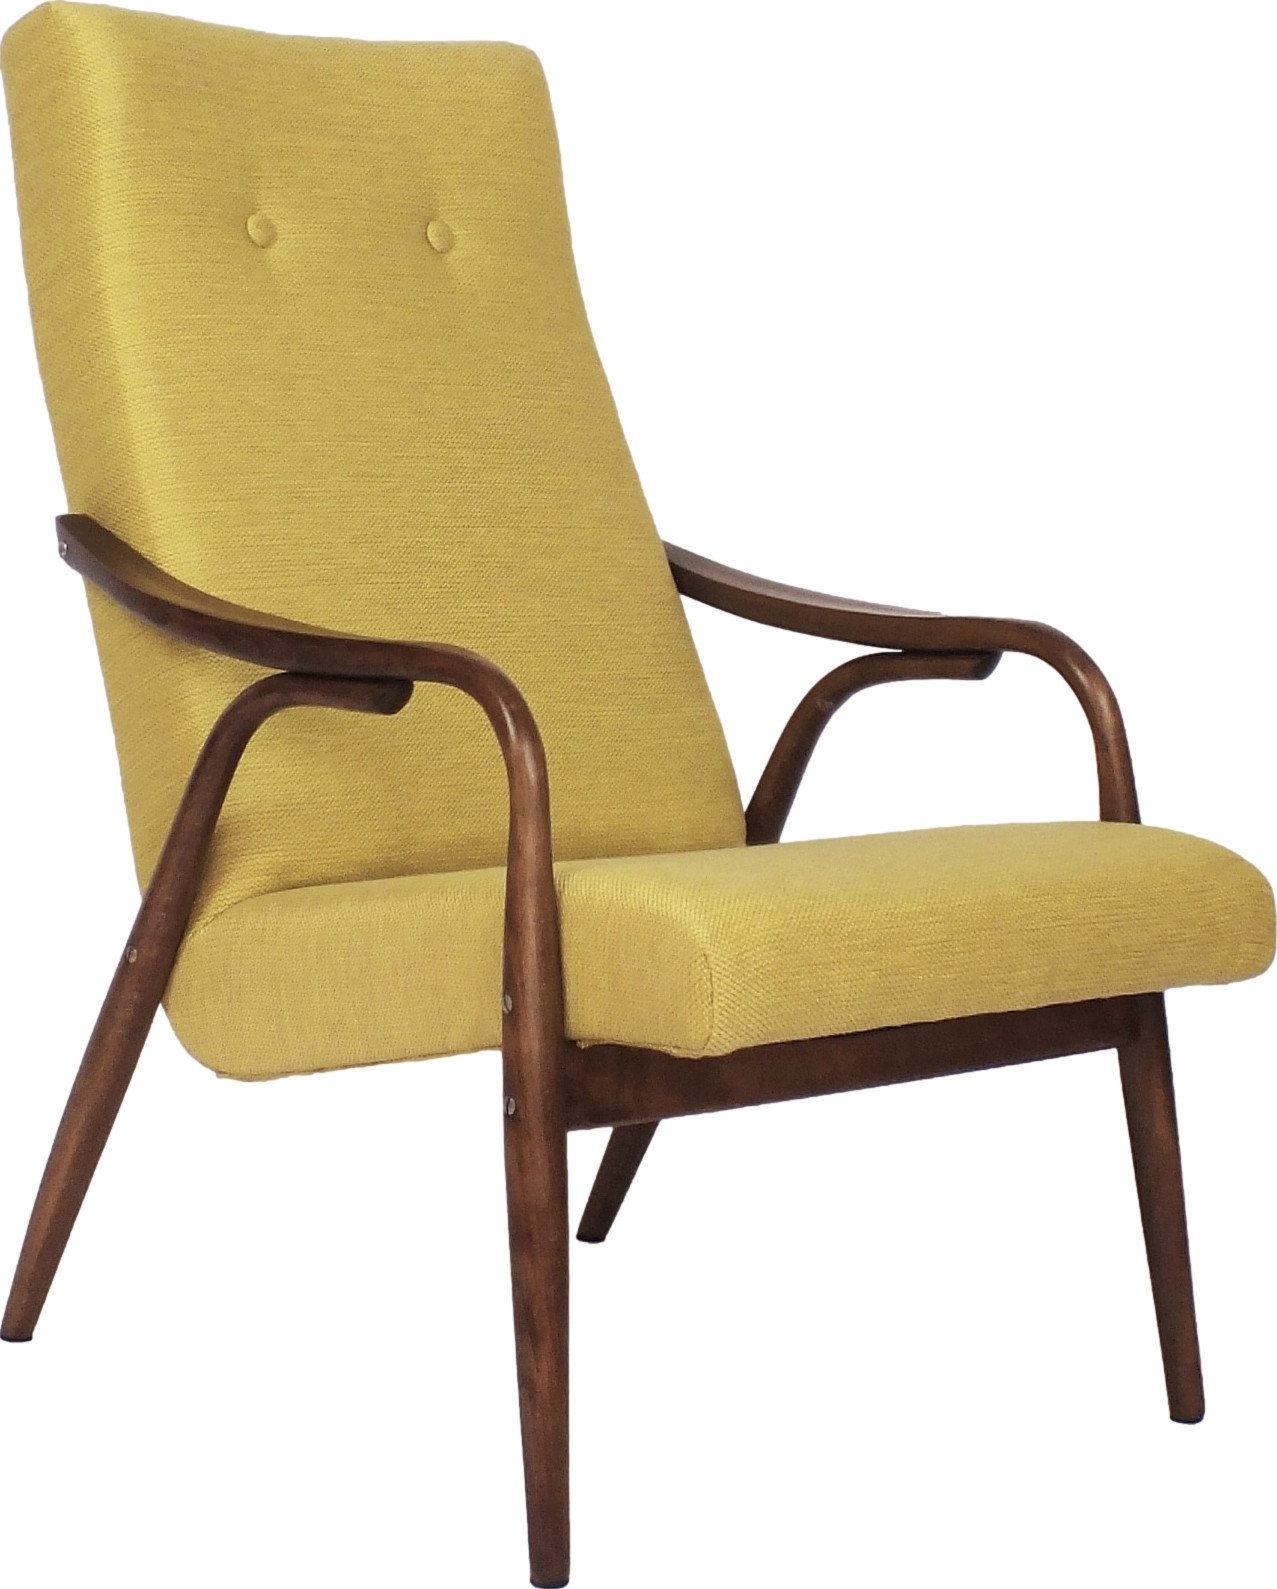 Armchair model 947, TON, Czechoslovakia, 1960s